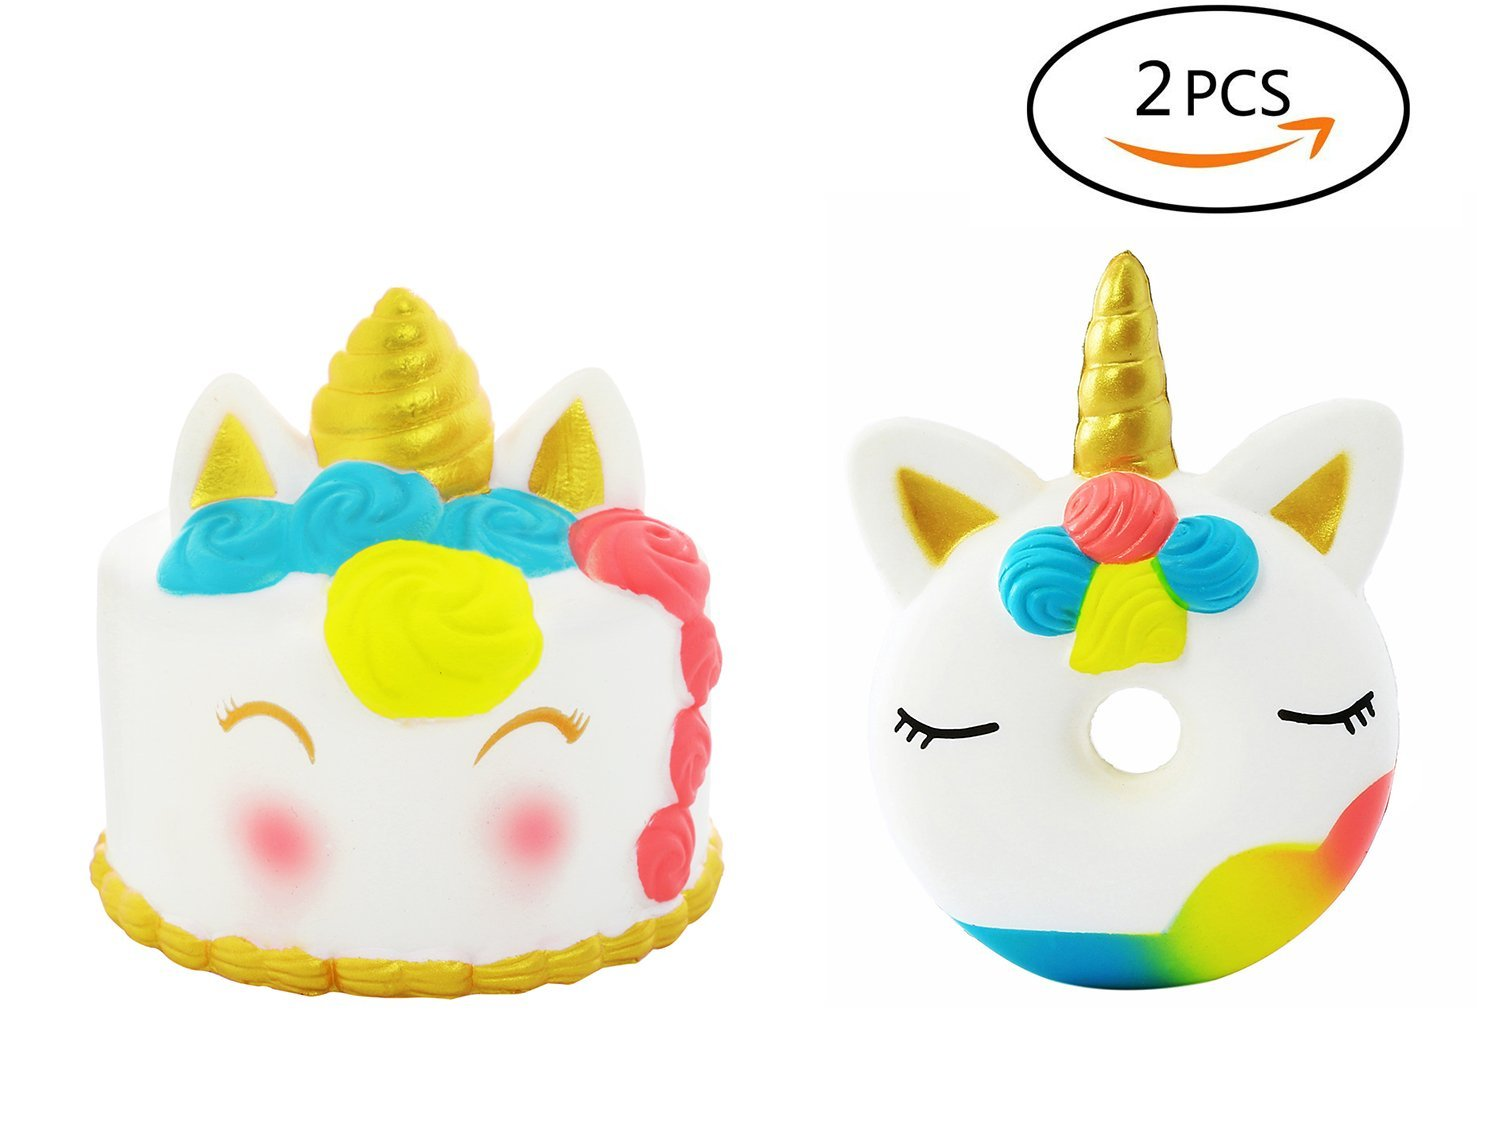 AOLIGE 2PCs Squishies Slow Rising Jumbo Kawaii Cute Unicorn Donut & Golden Unicorn Cake Creamy Scent for Kids Party Toys Stress Reliever Toy